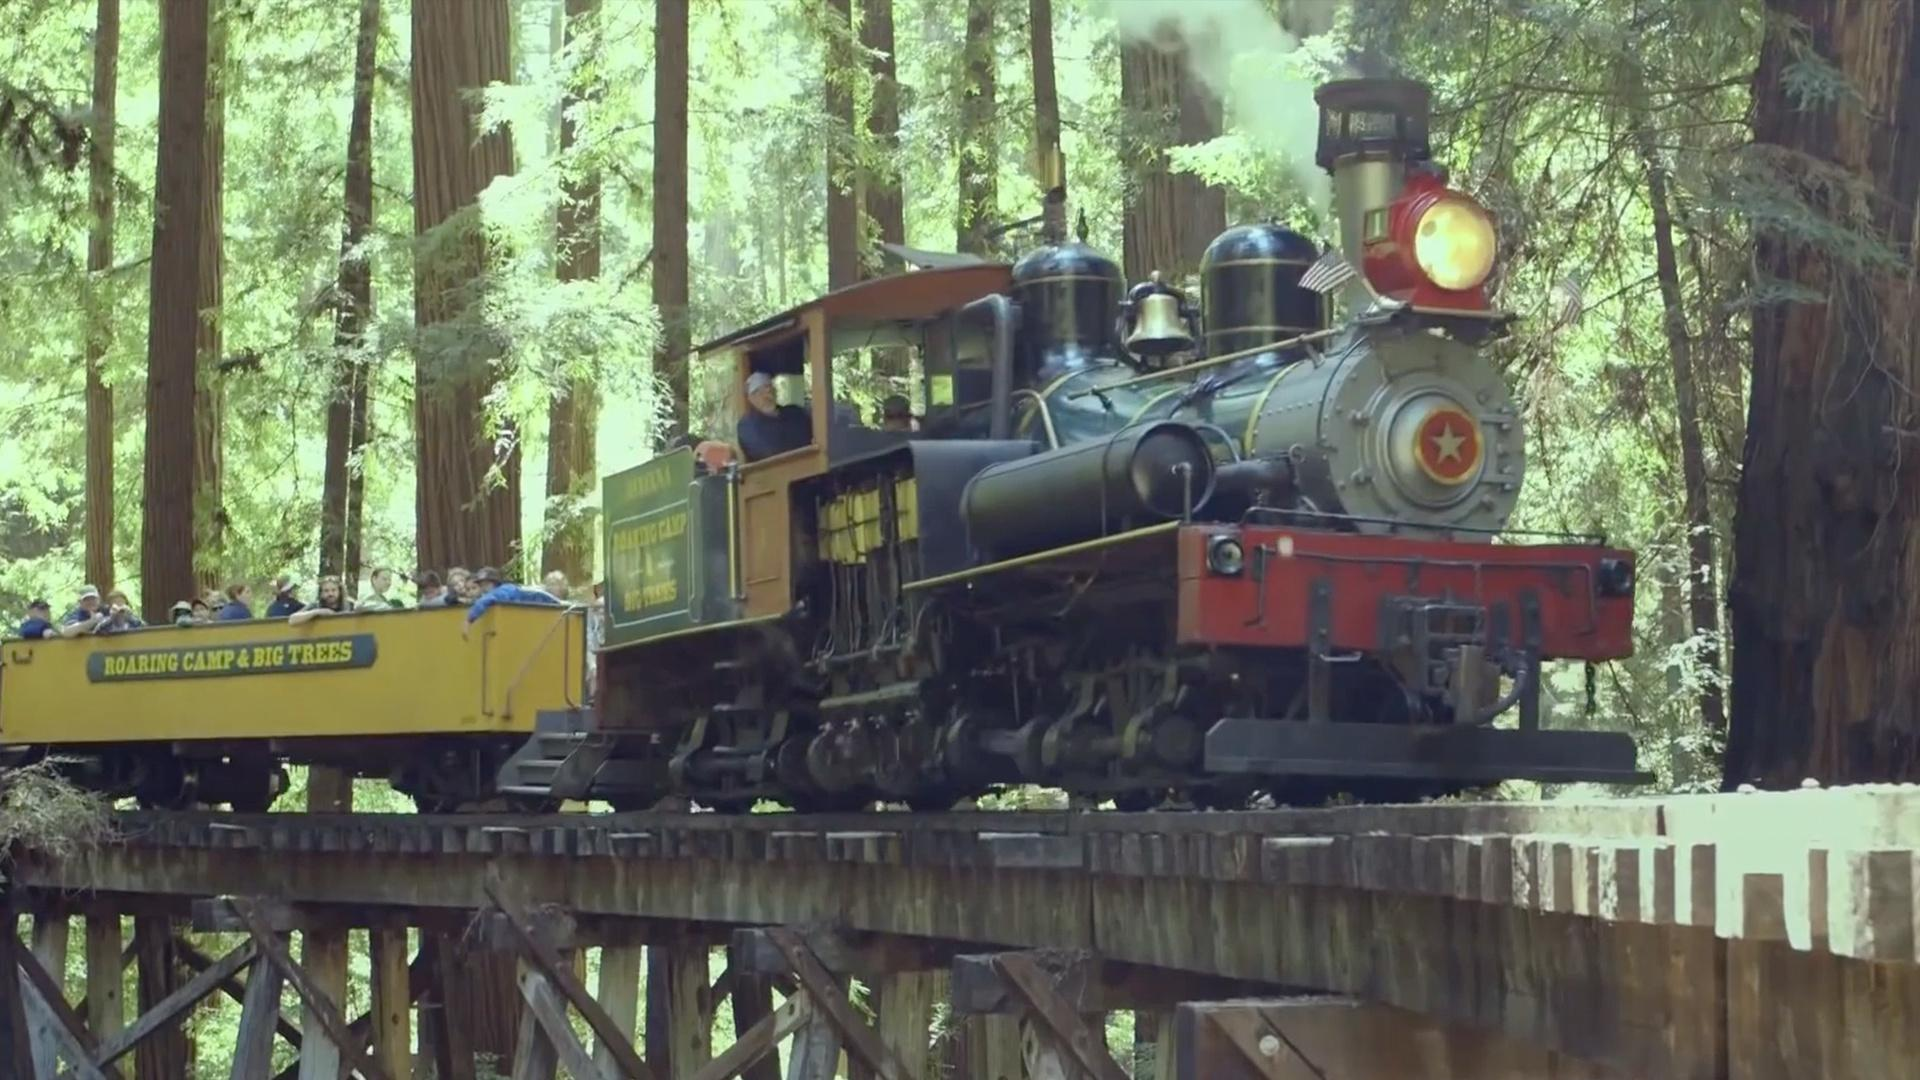 The 10 Most Beautiful Vintage Train Routes in America